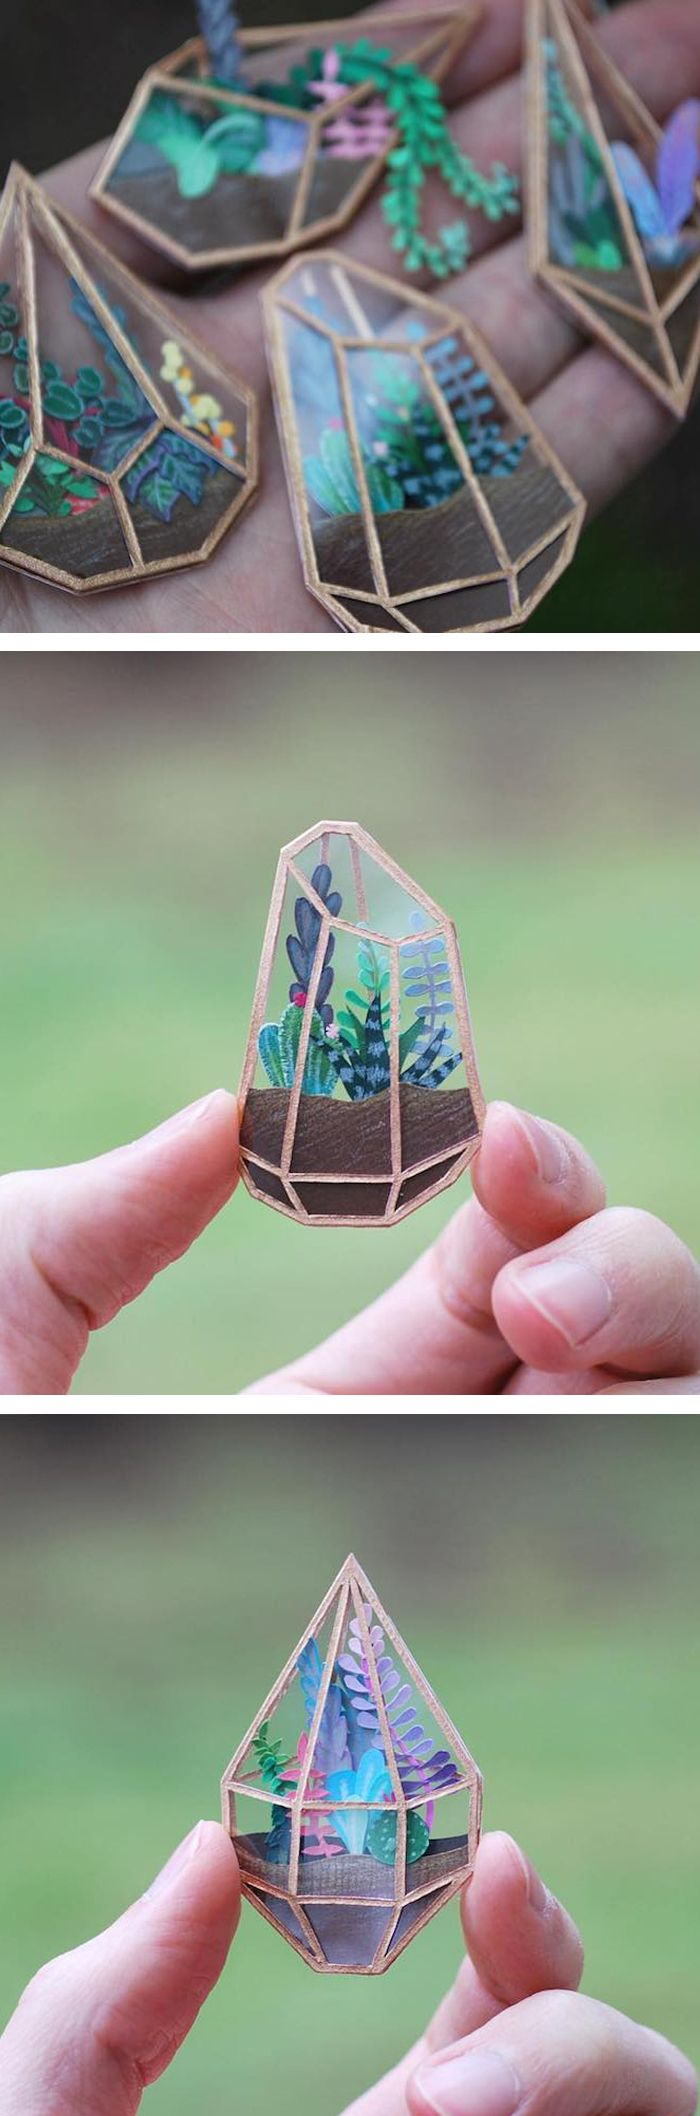 Cameron Garlandus Tiny Terrariums You Can Hold on Your Fingertip